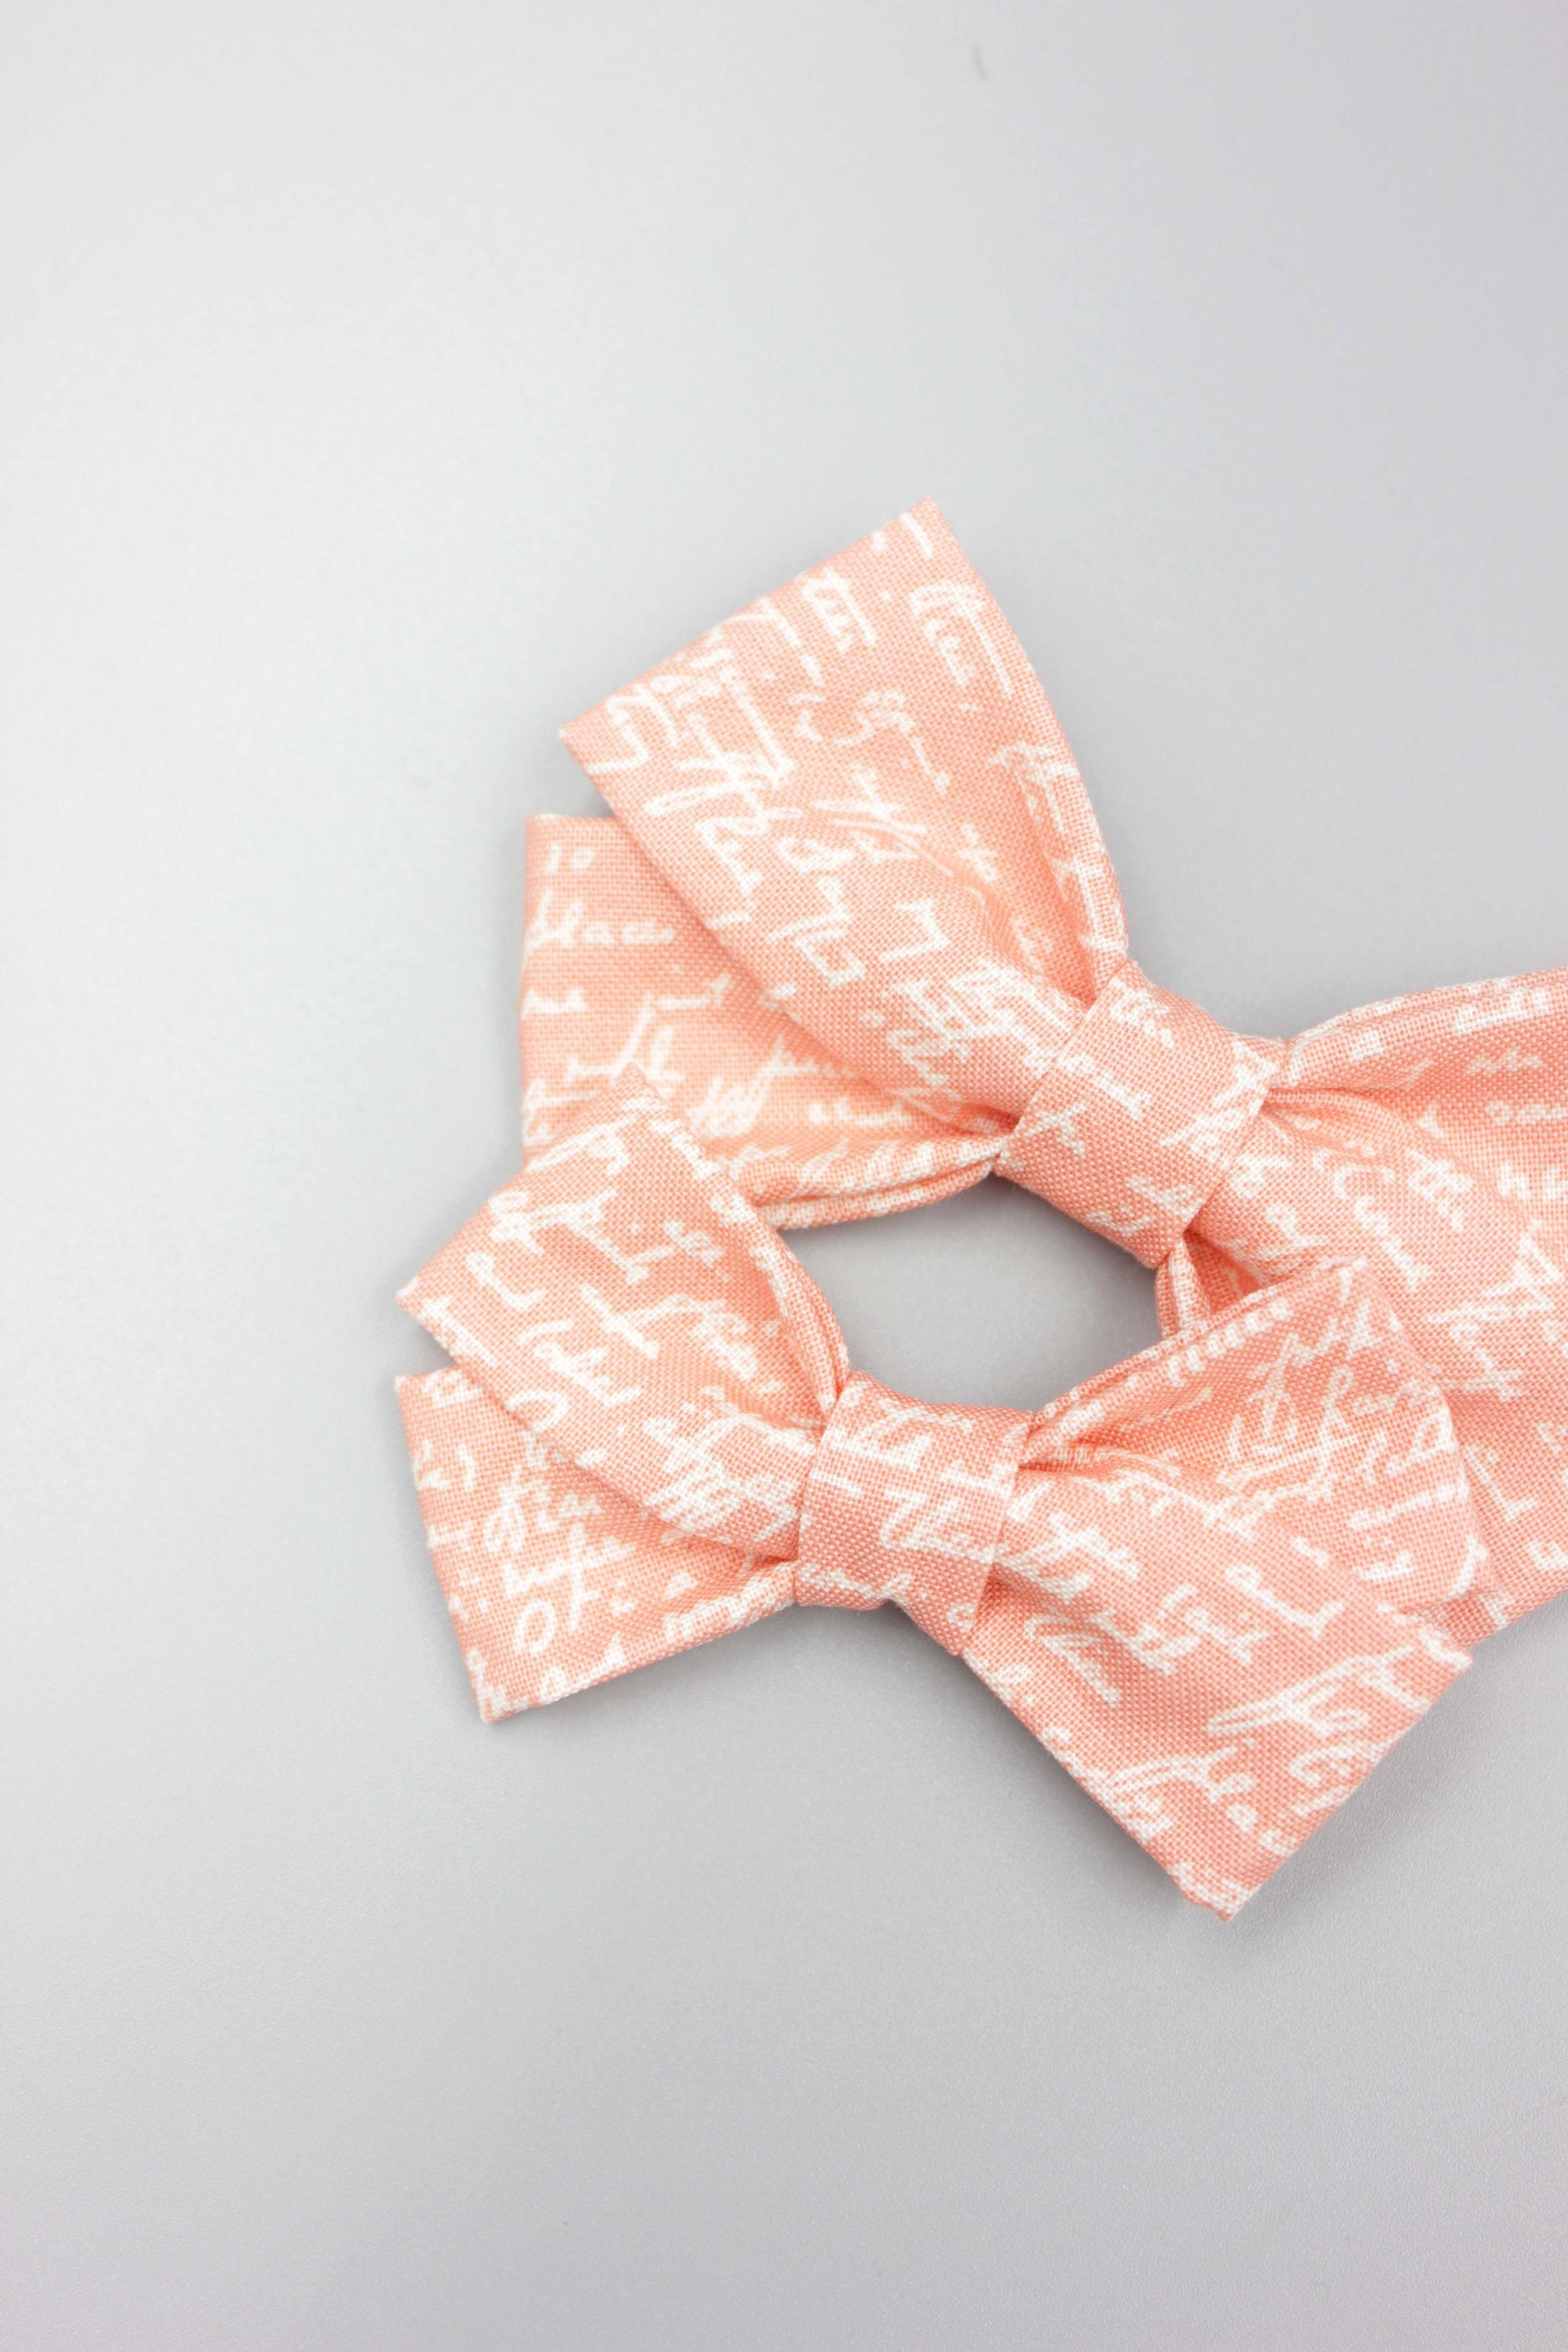 Peach Love Letter Bow Headband Bows Baby Girl Bows Toddler Bows